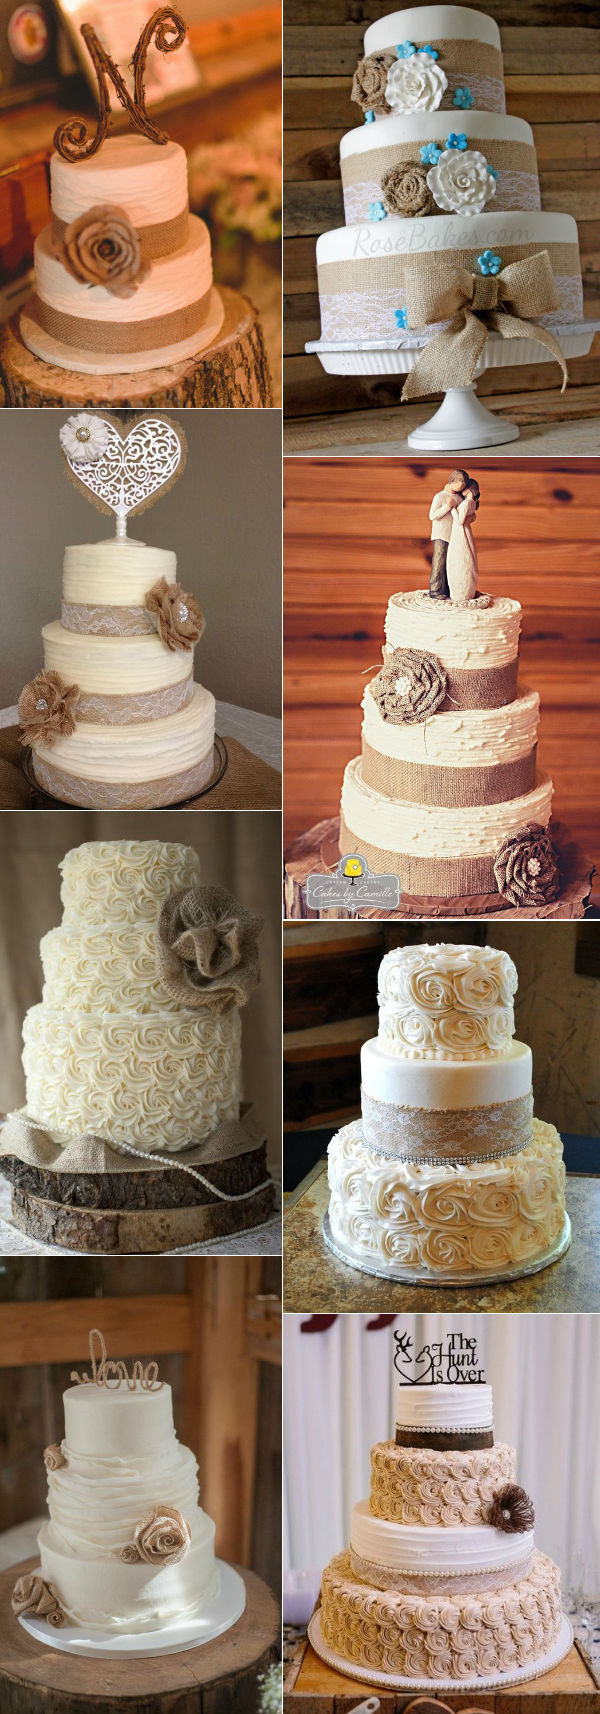 32 Amazing Wedding Cakes Perfect For Fall     Elegantweddinginvites     country rustic burlap and lace wedding cakes for fall